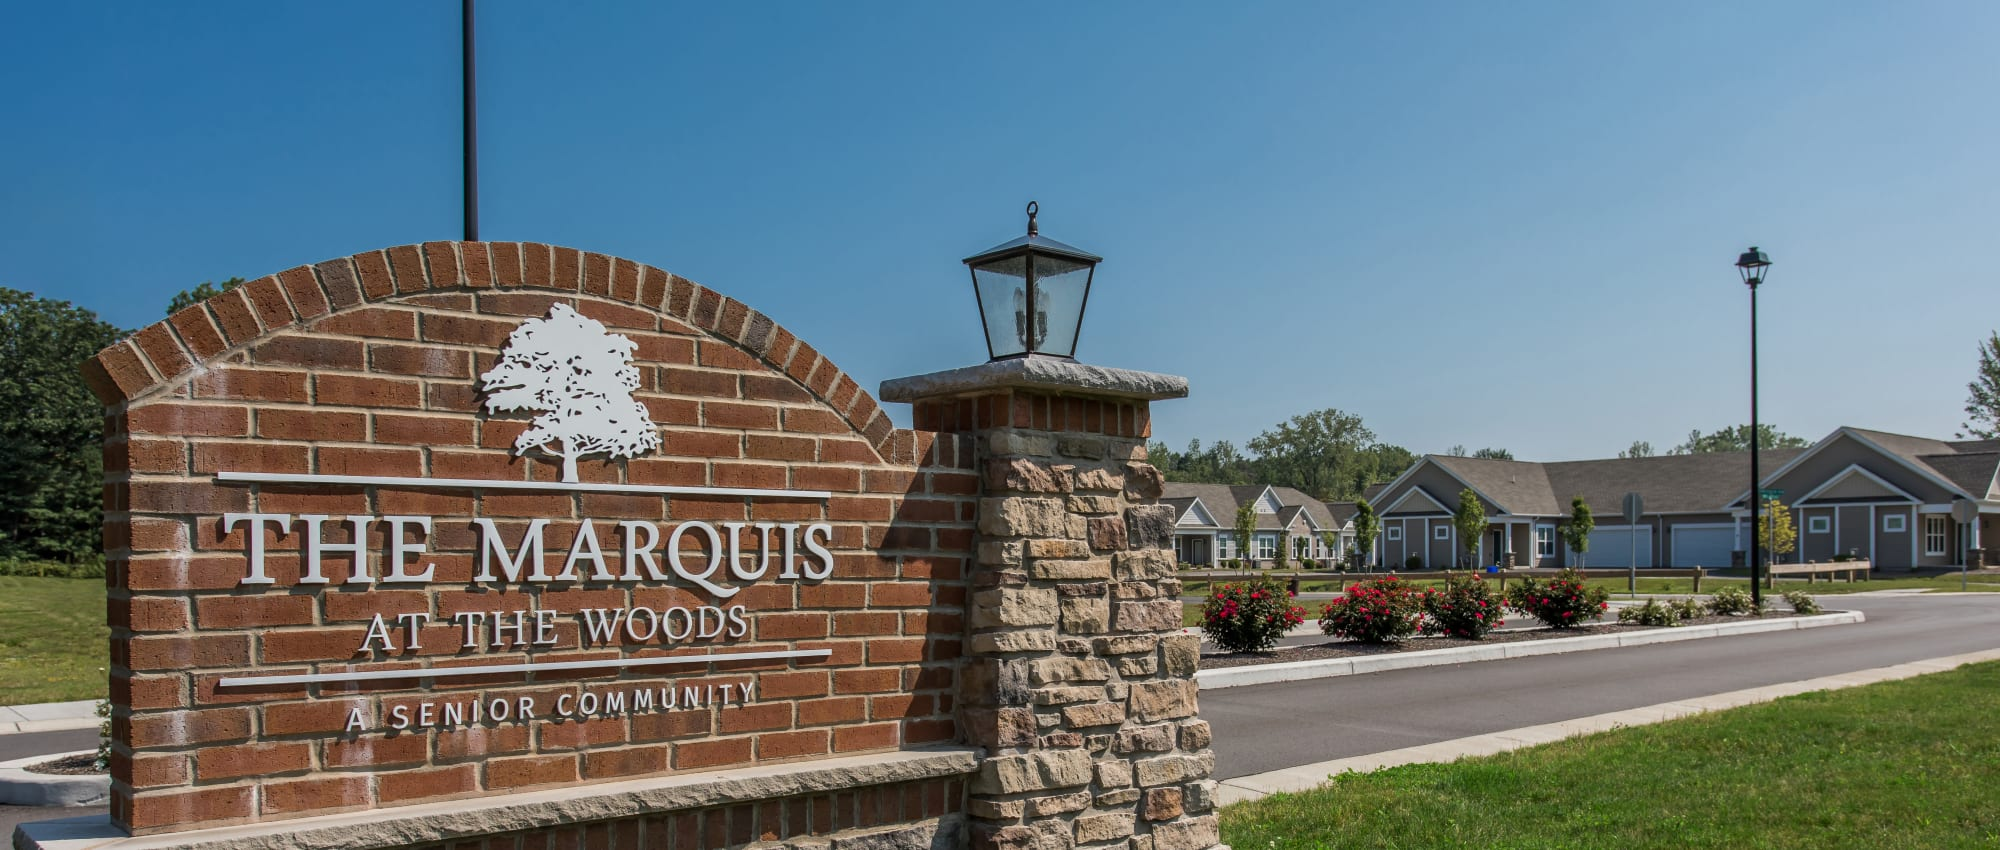 Apartments at The Marquis at the Woods in Webster, New York